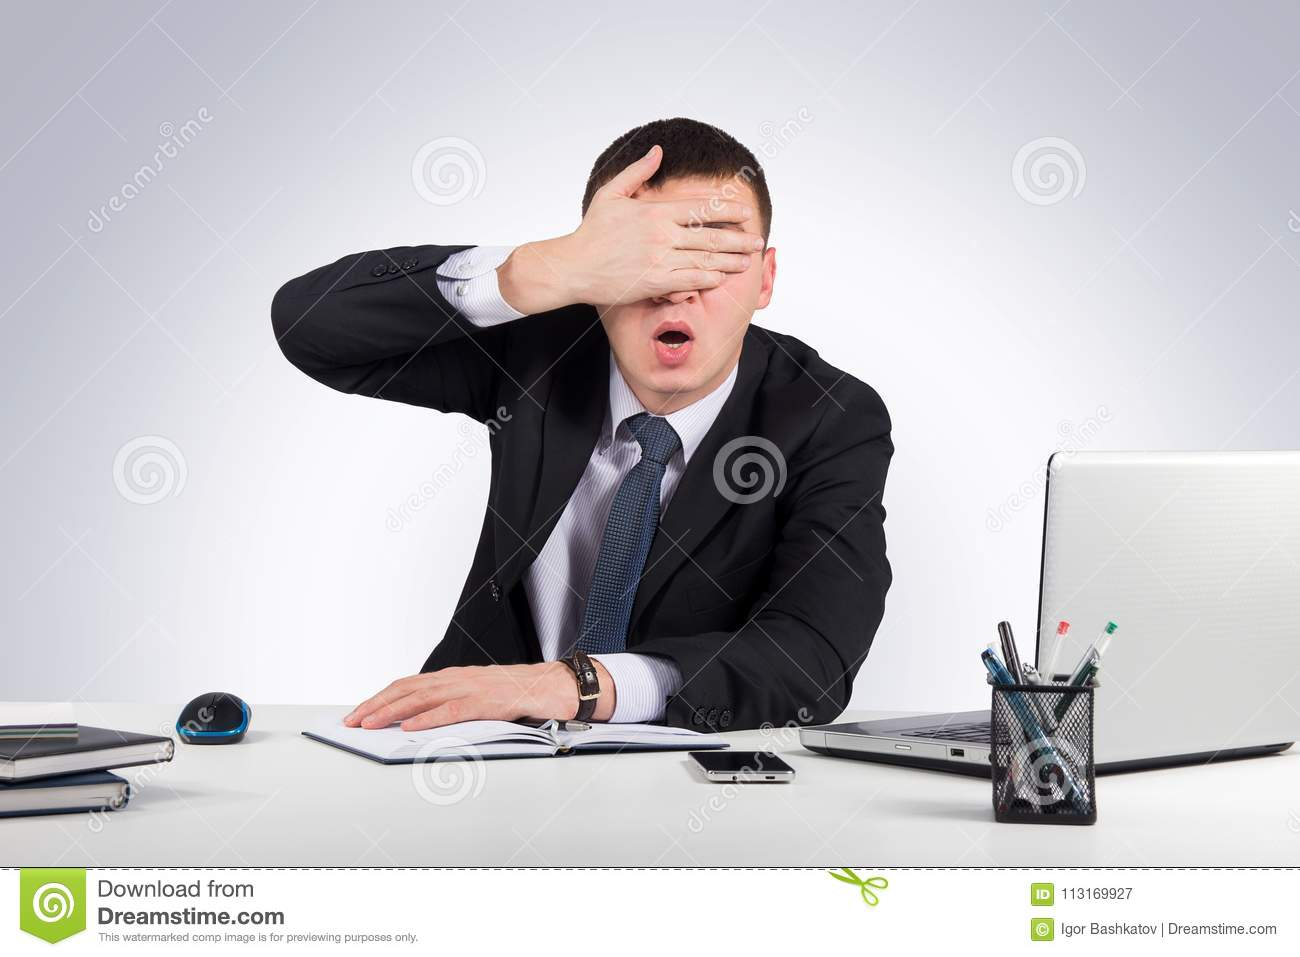 Frustrated businessman close his eyes by hand on gray background